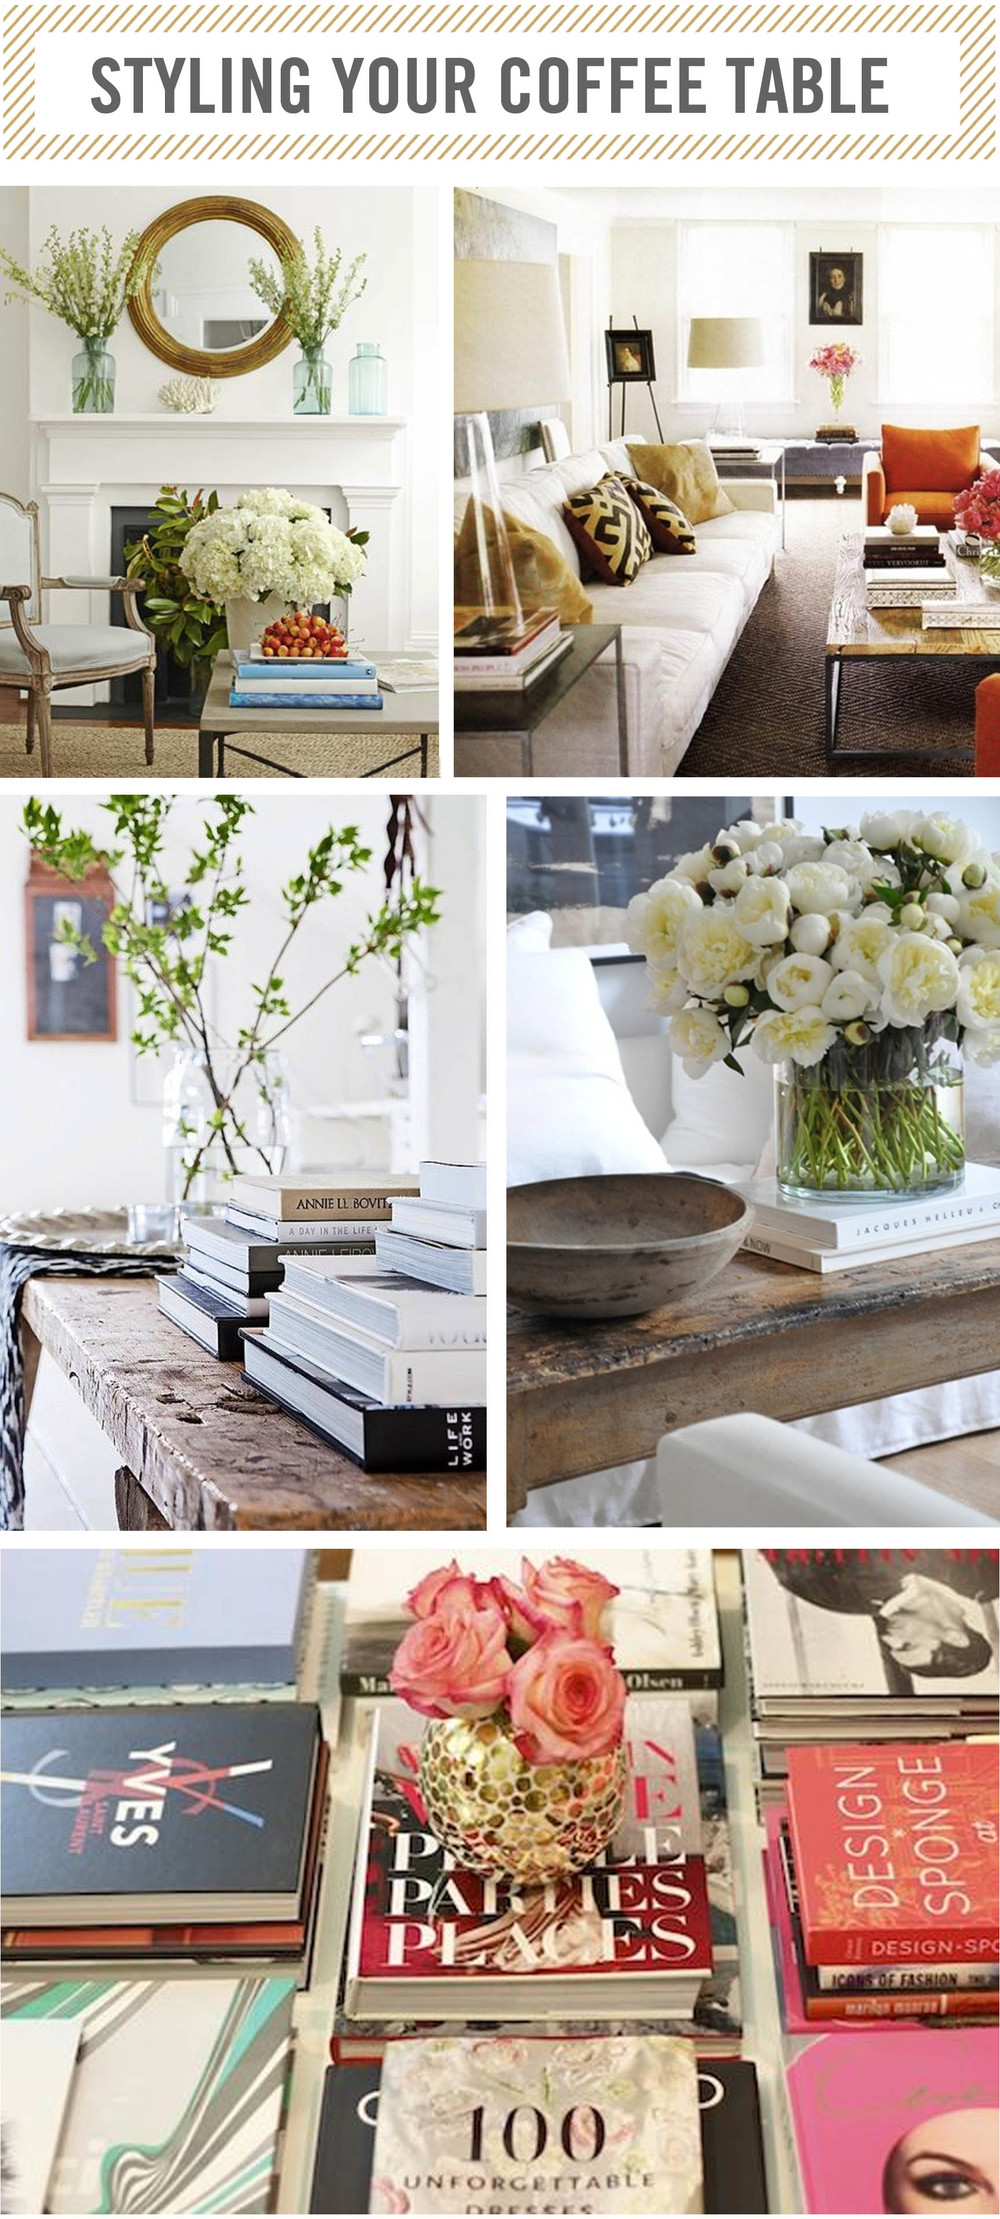 The Best Coffee Table Books — West Coast Capri